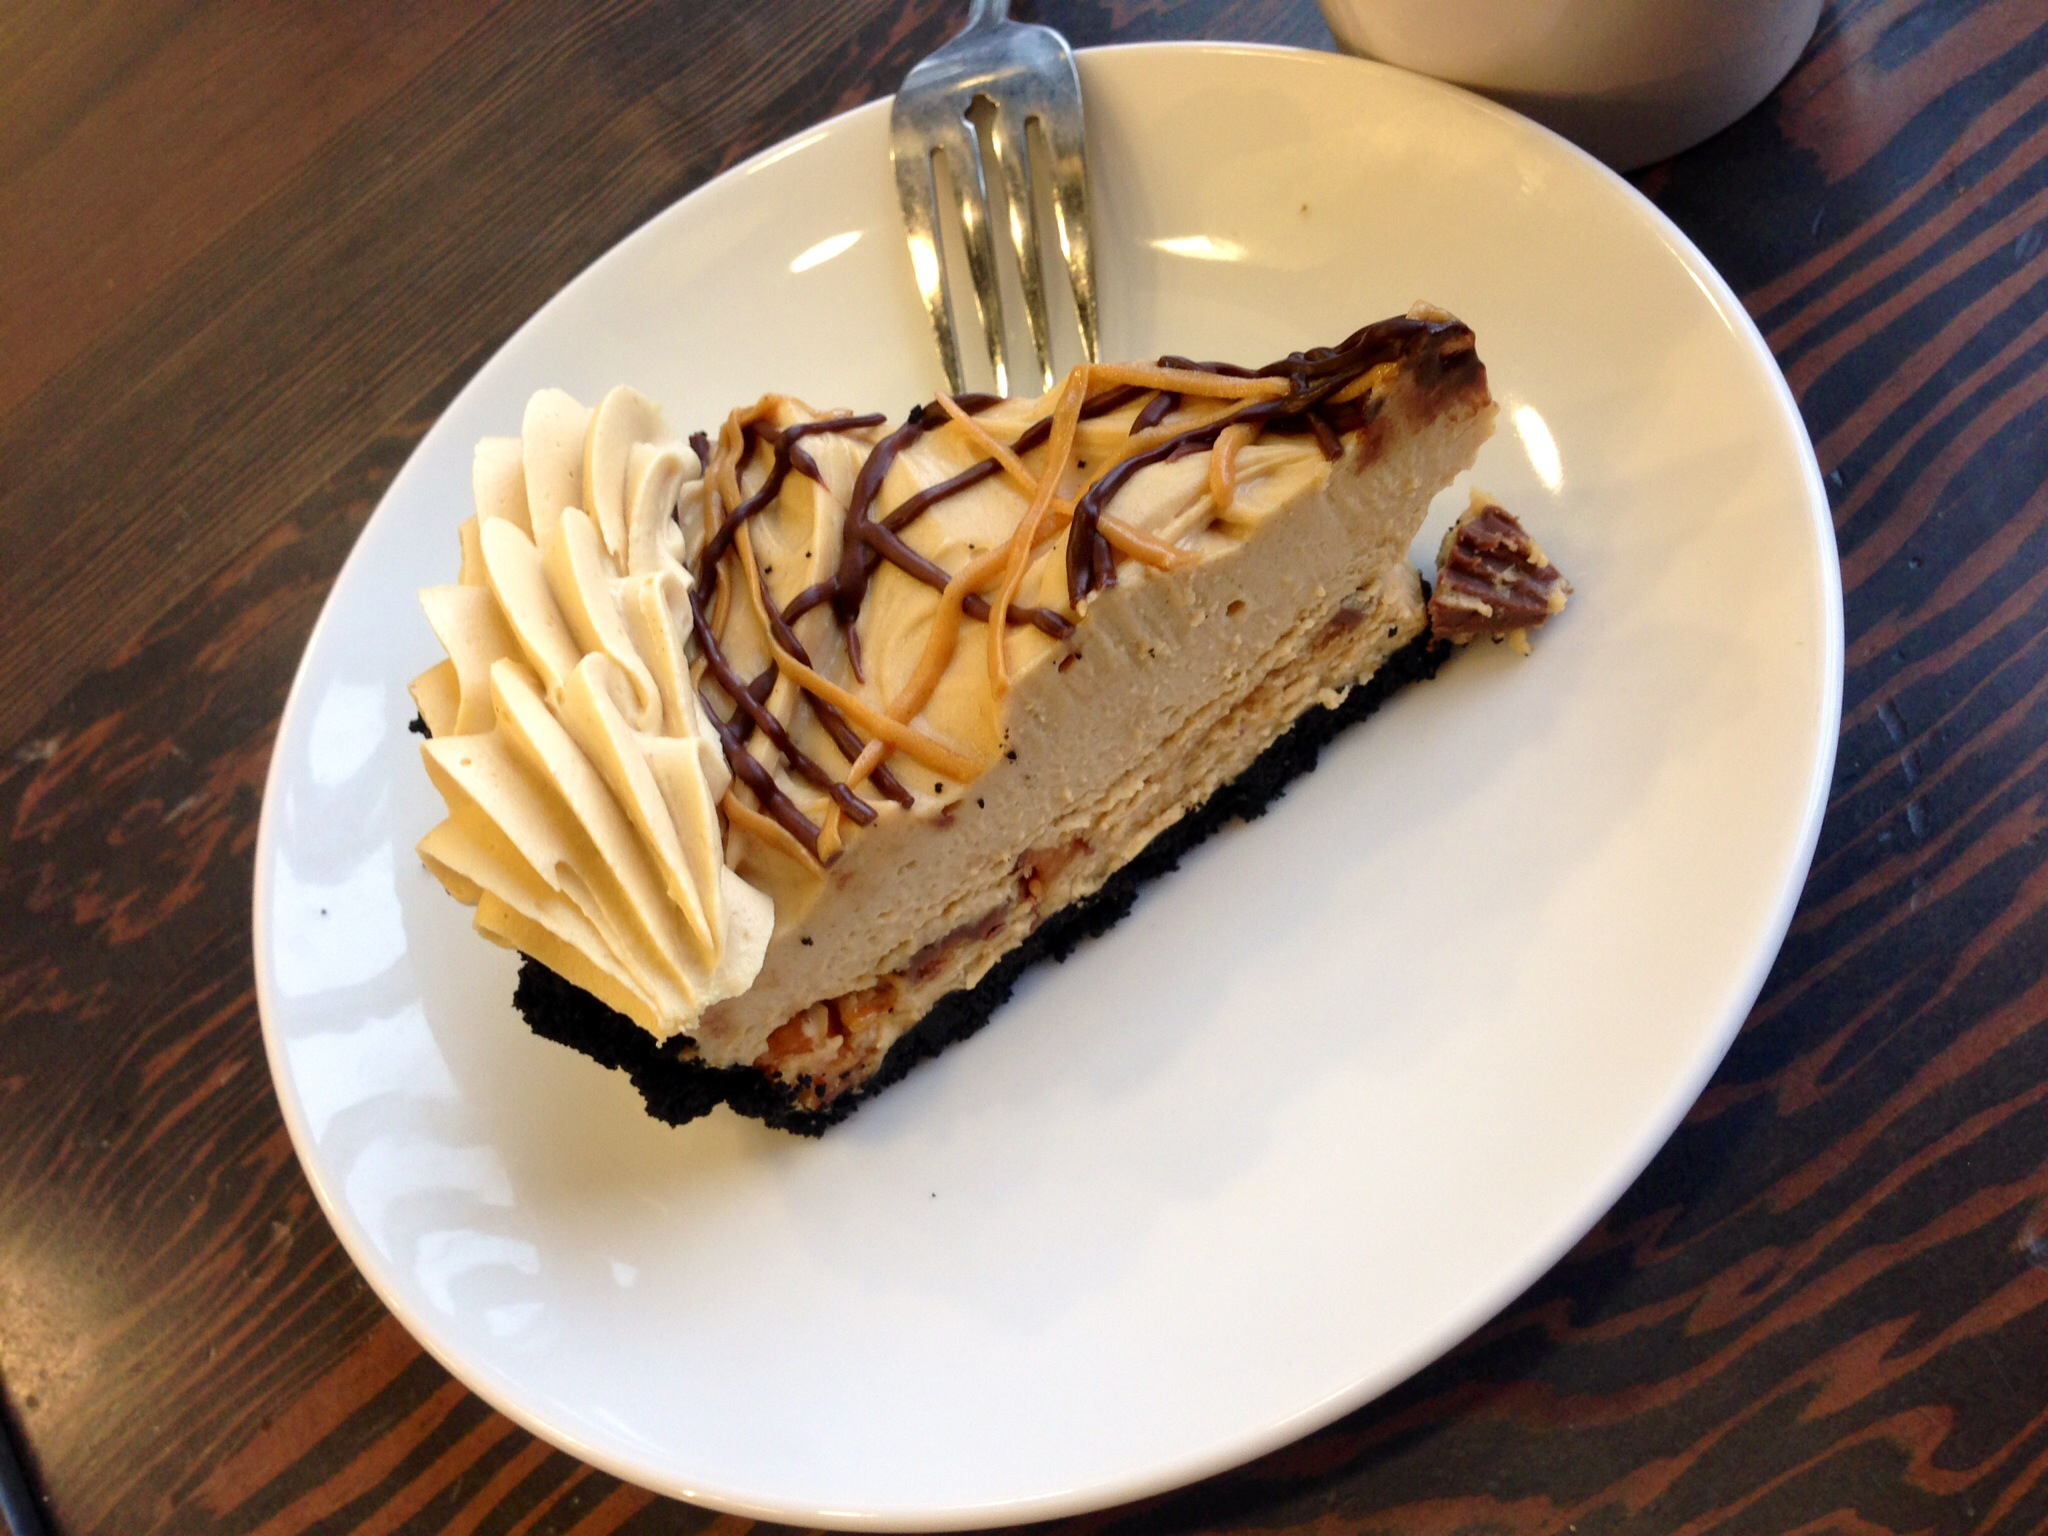 Peanut Butter Pie @ The Last Crumb Bakery & Cafe